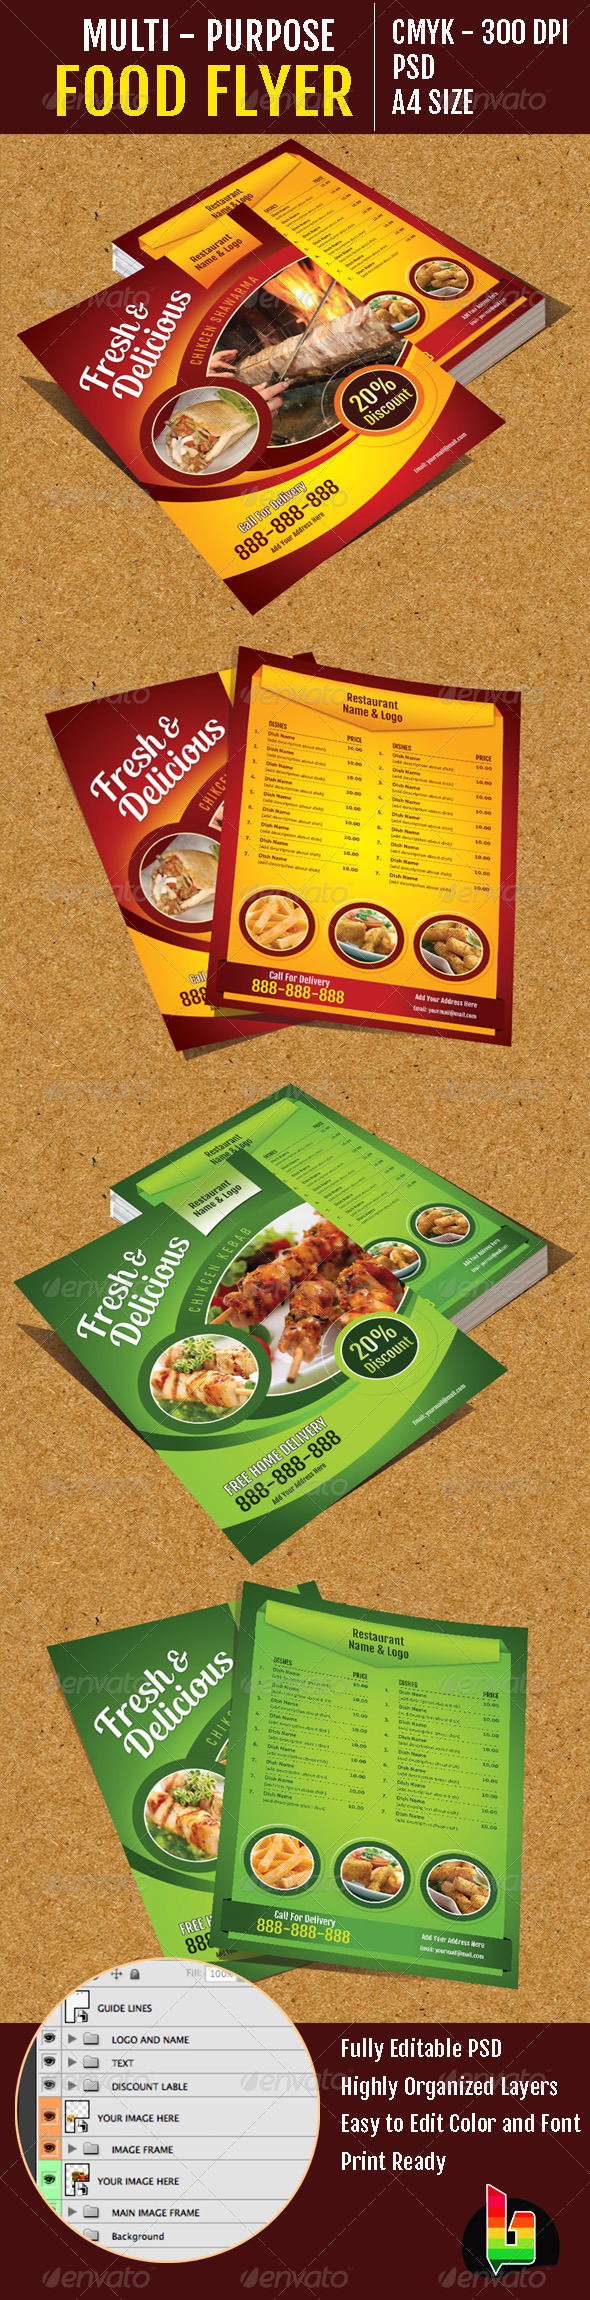 Multi-Purpose Food Flyer - Restaurant Flyers